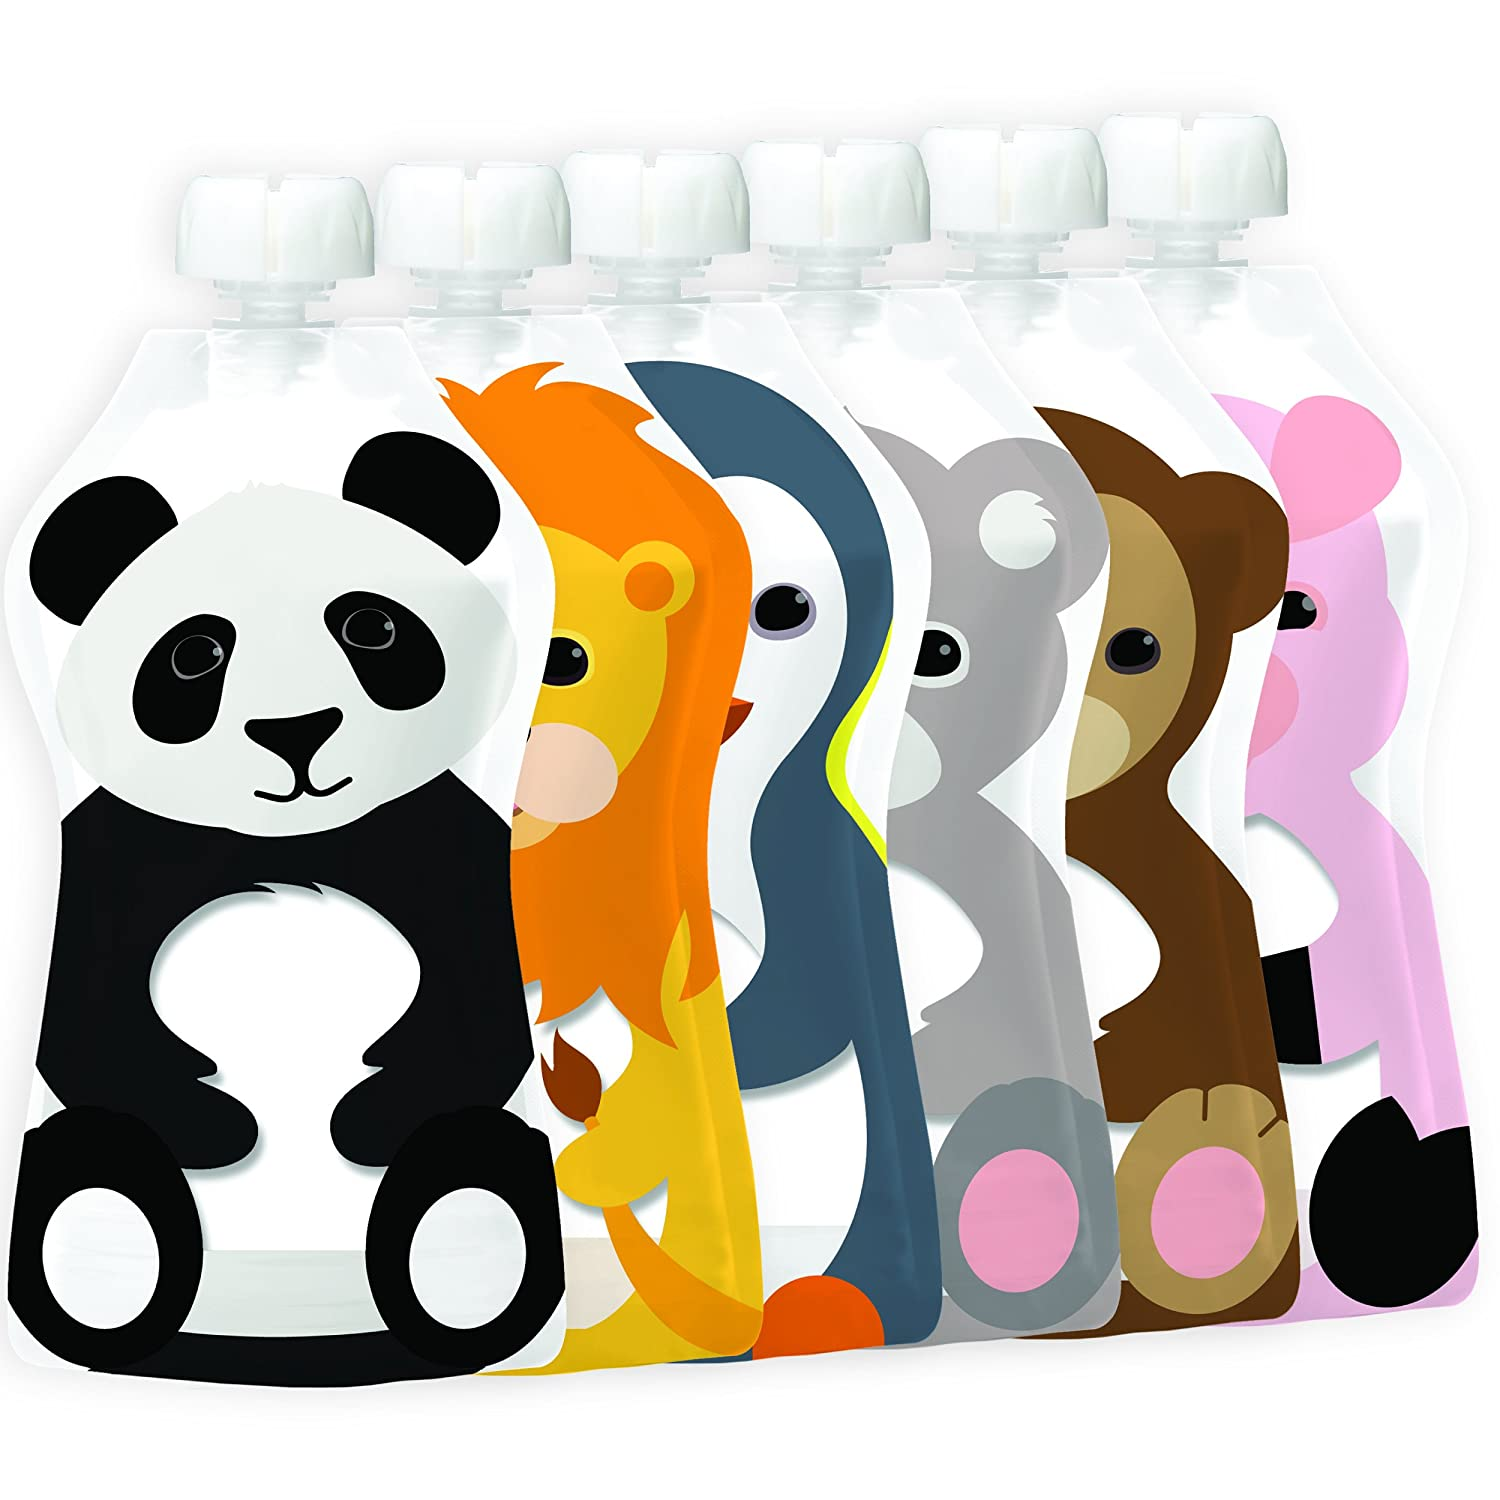 Squooshi Reusable Food Pouch | Sample Pack | 6 Pouches Squooshi Corp 40601